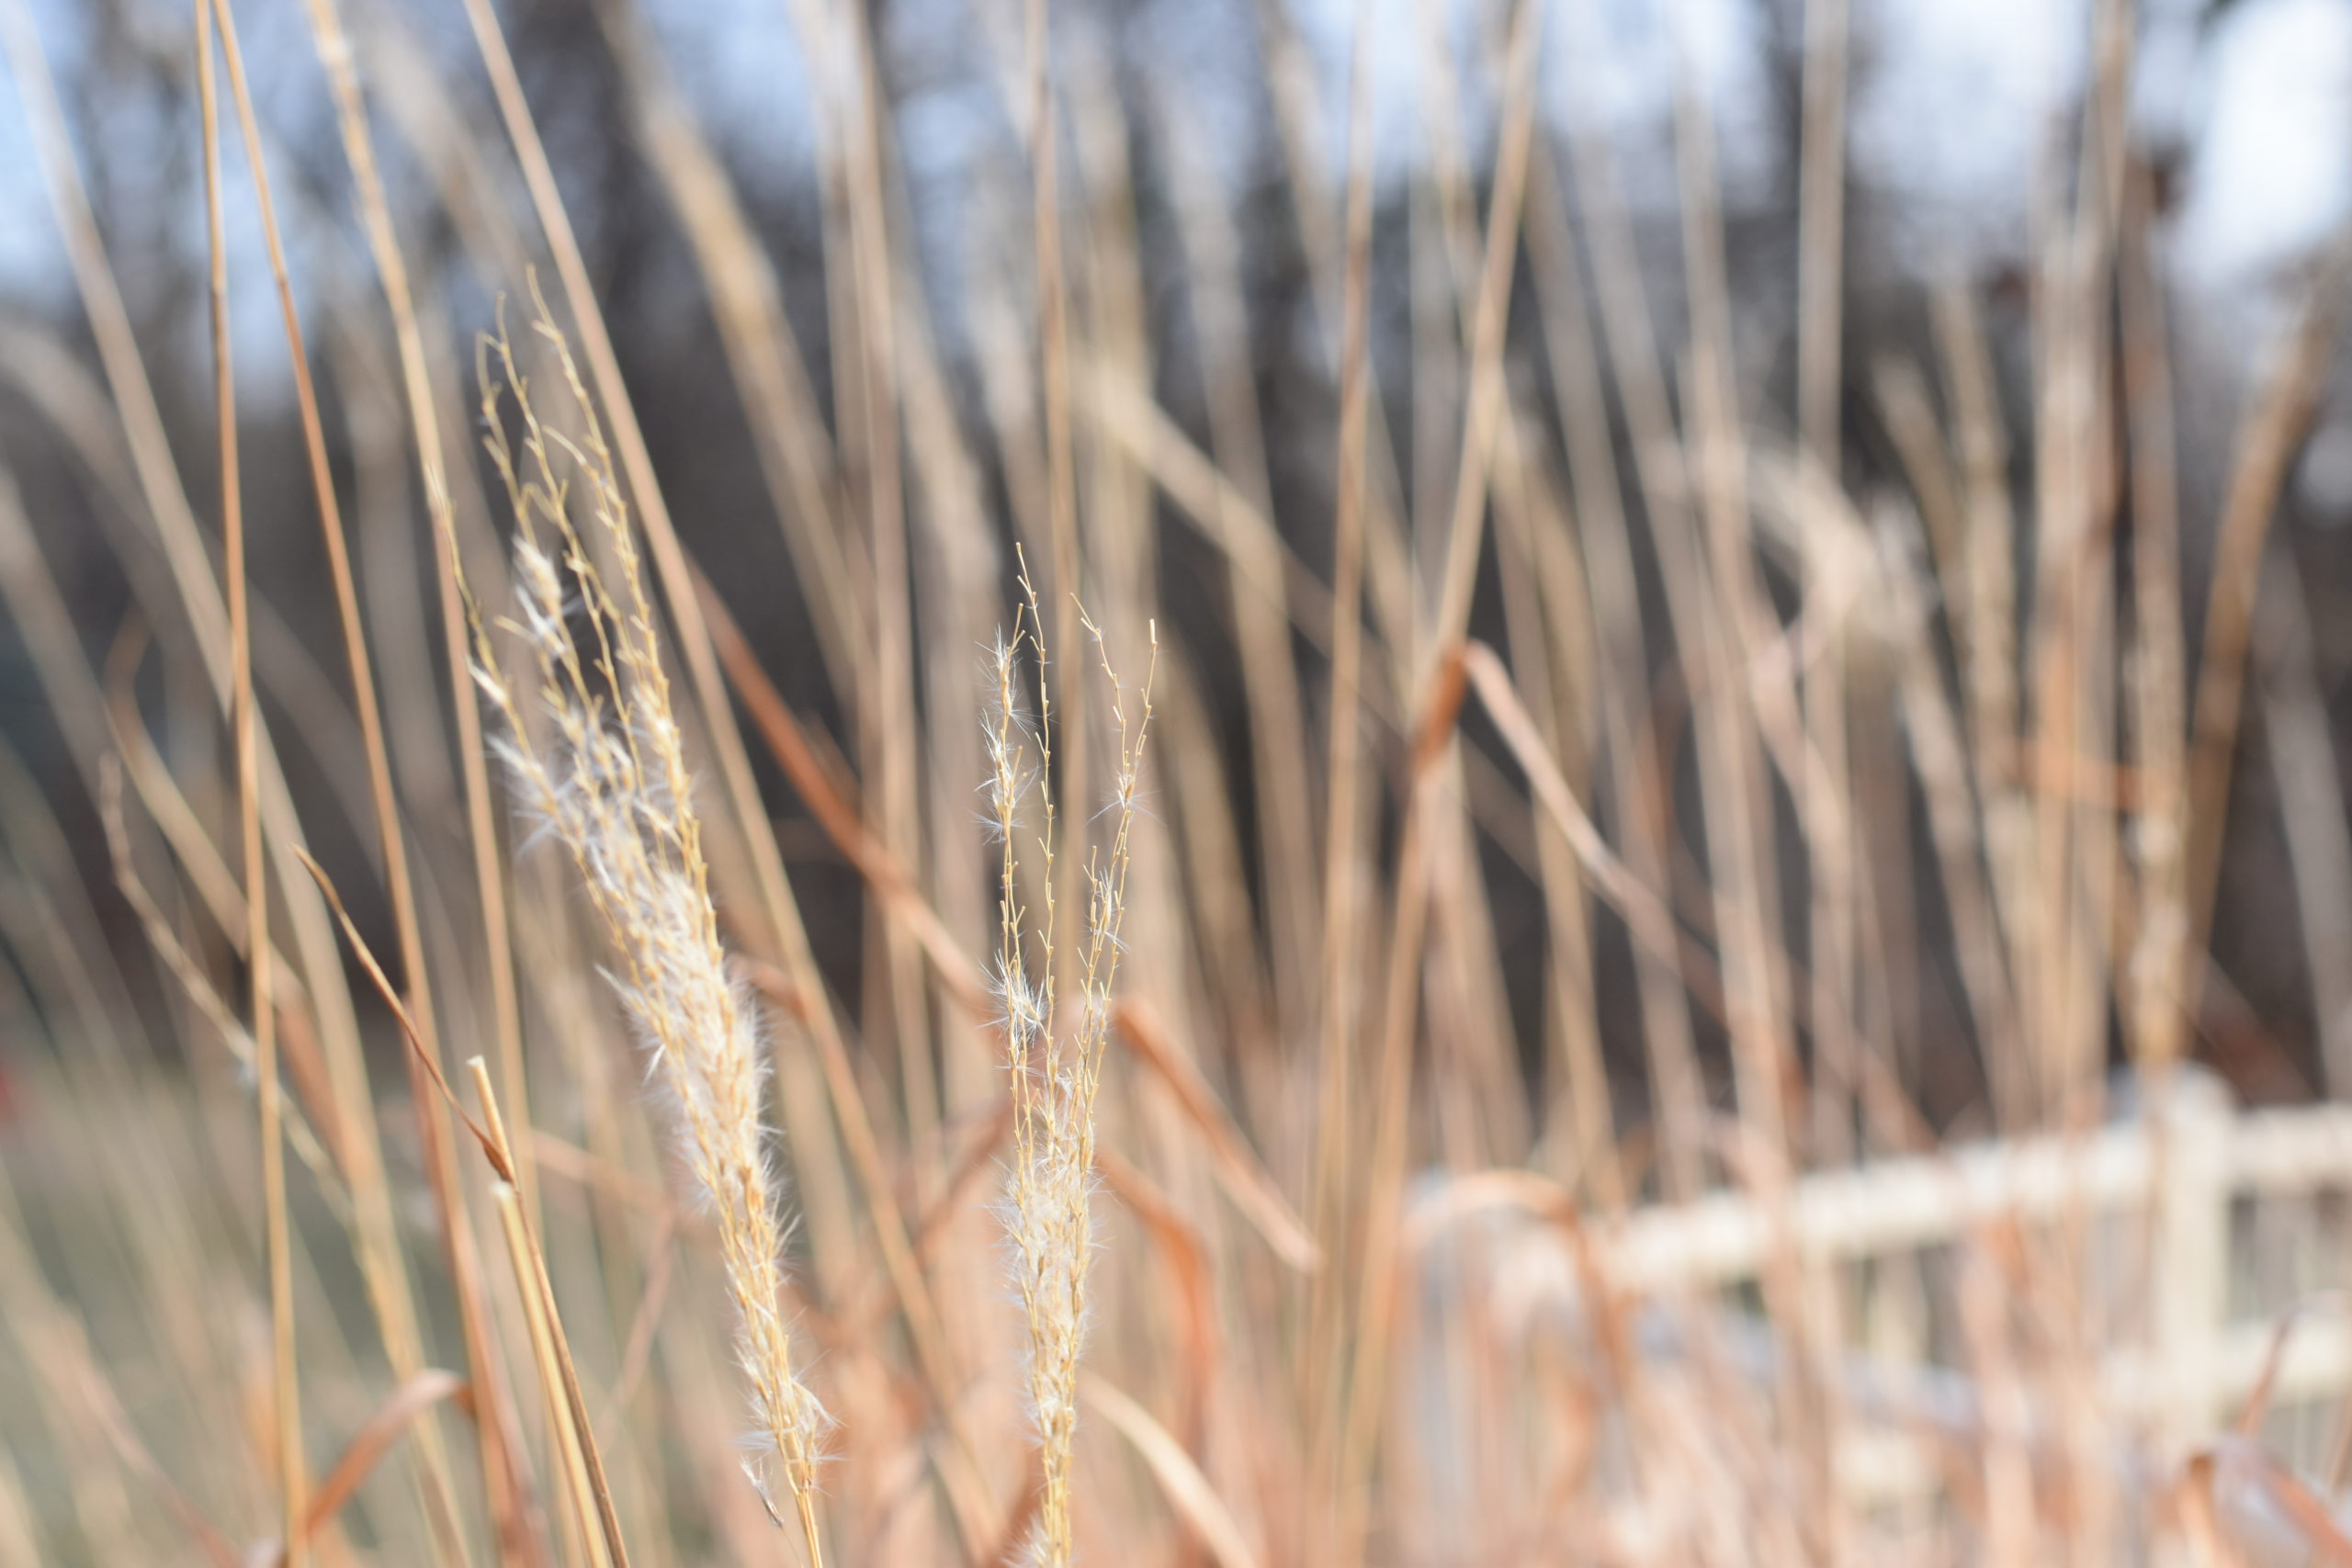 Grass wintered over